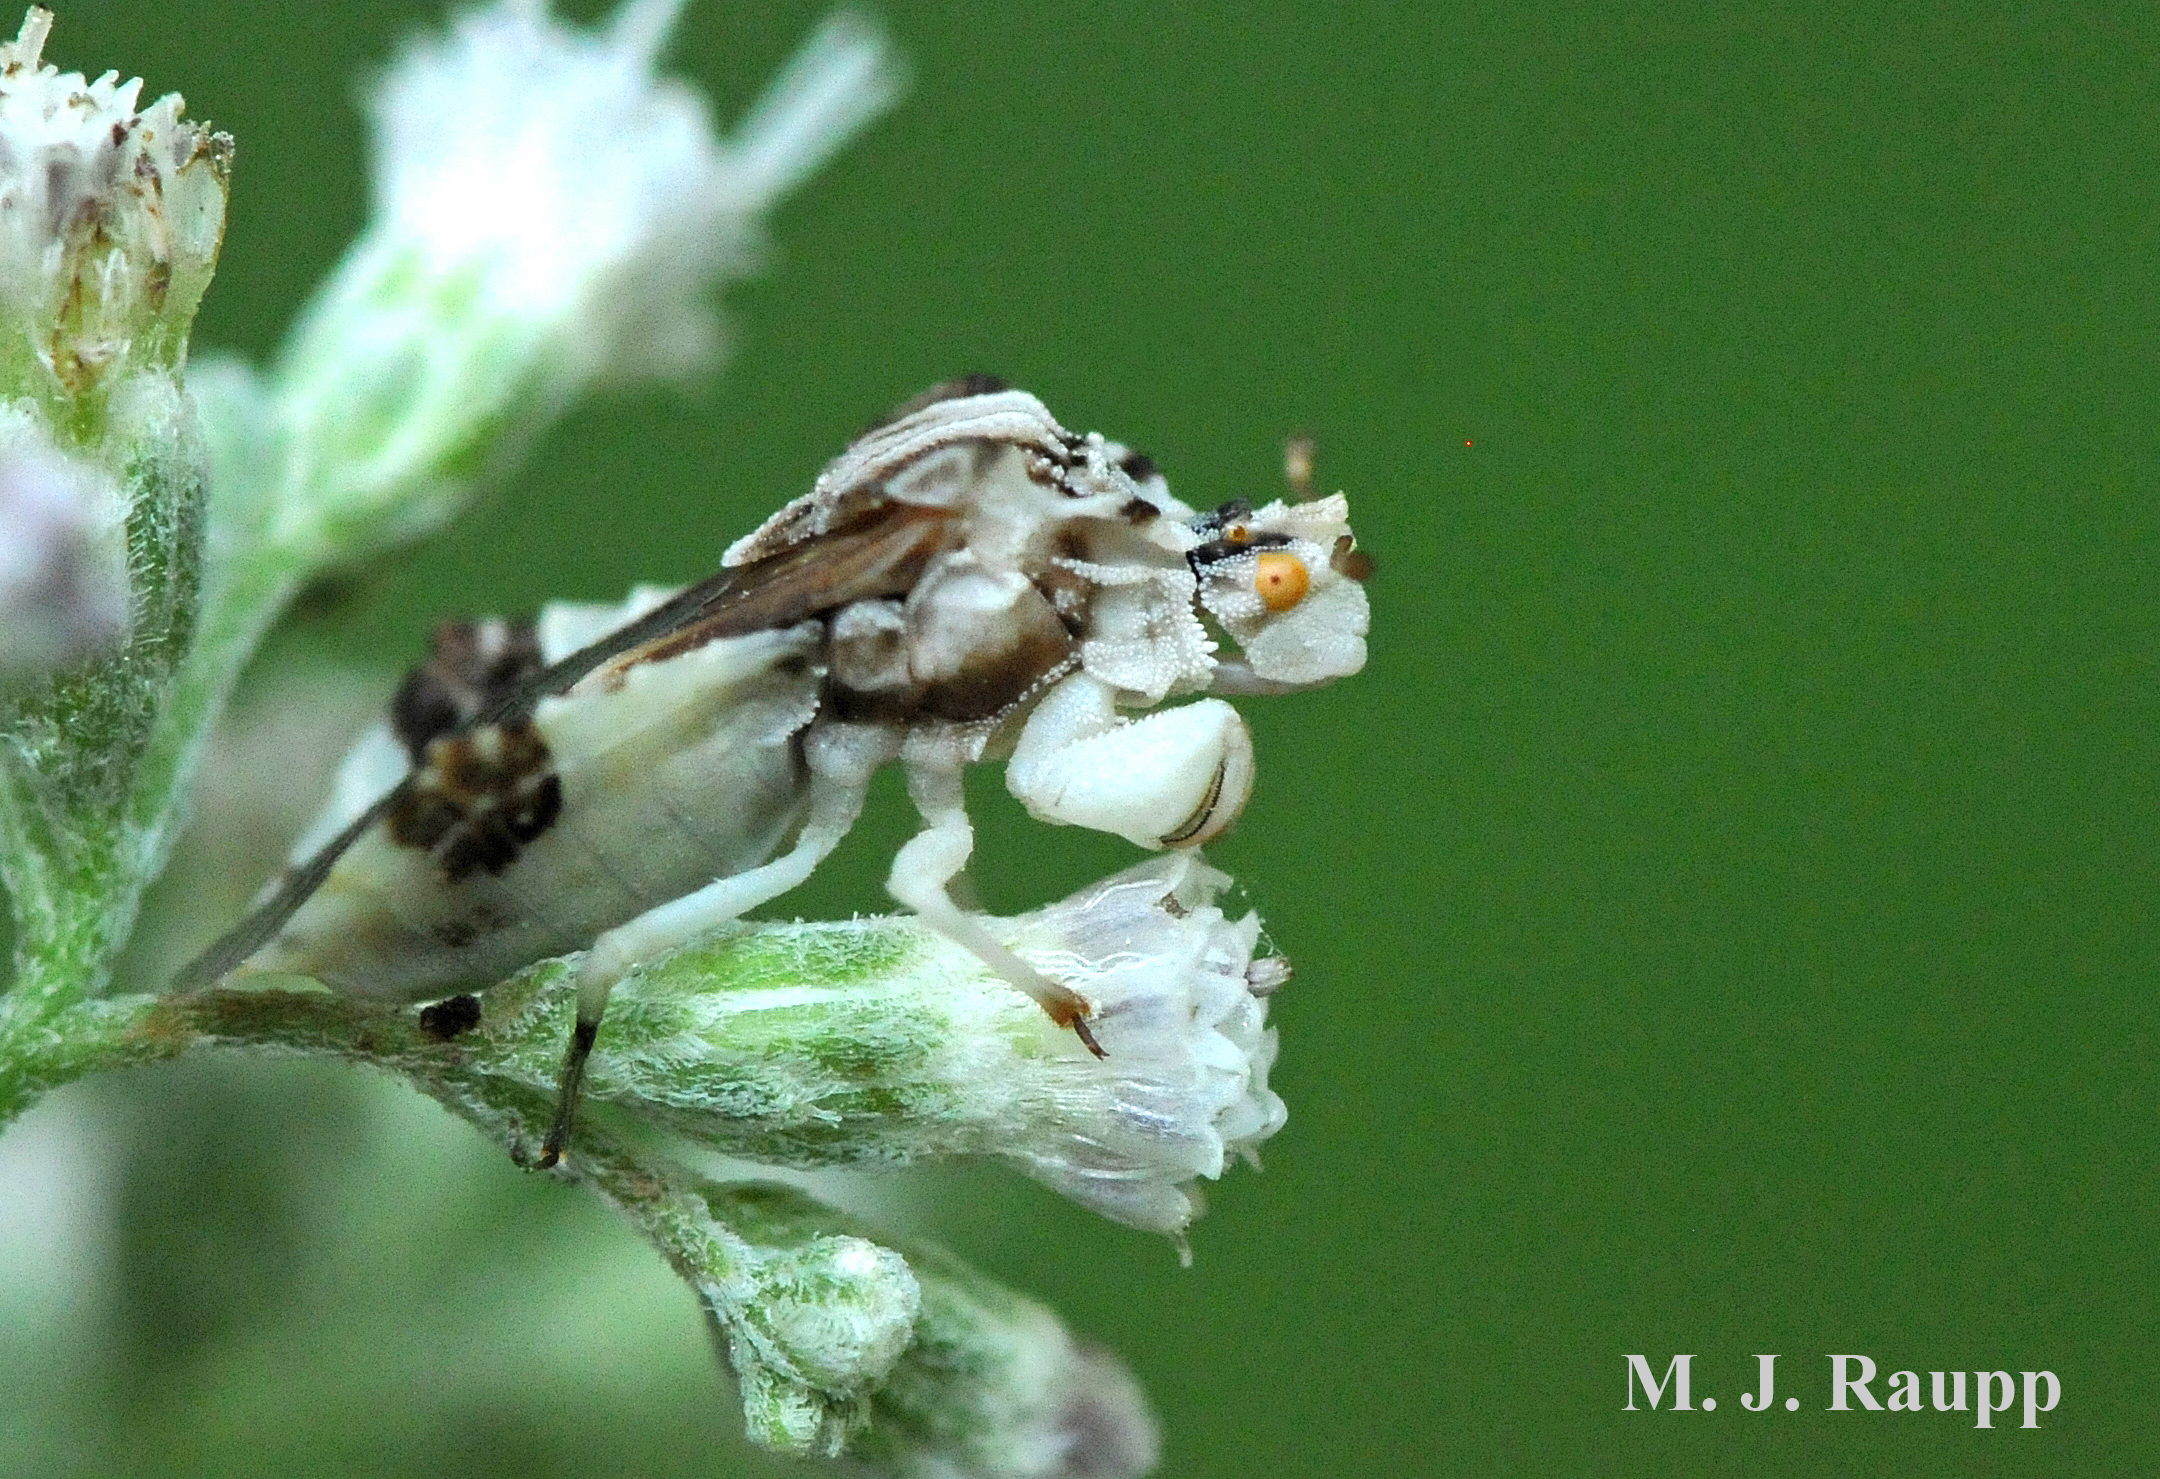 Ambush bug's enlarged forelegs allow it to snare its victim